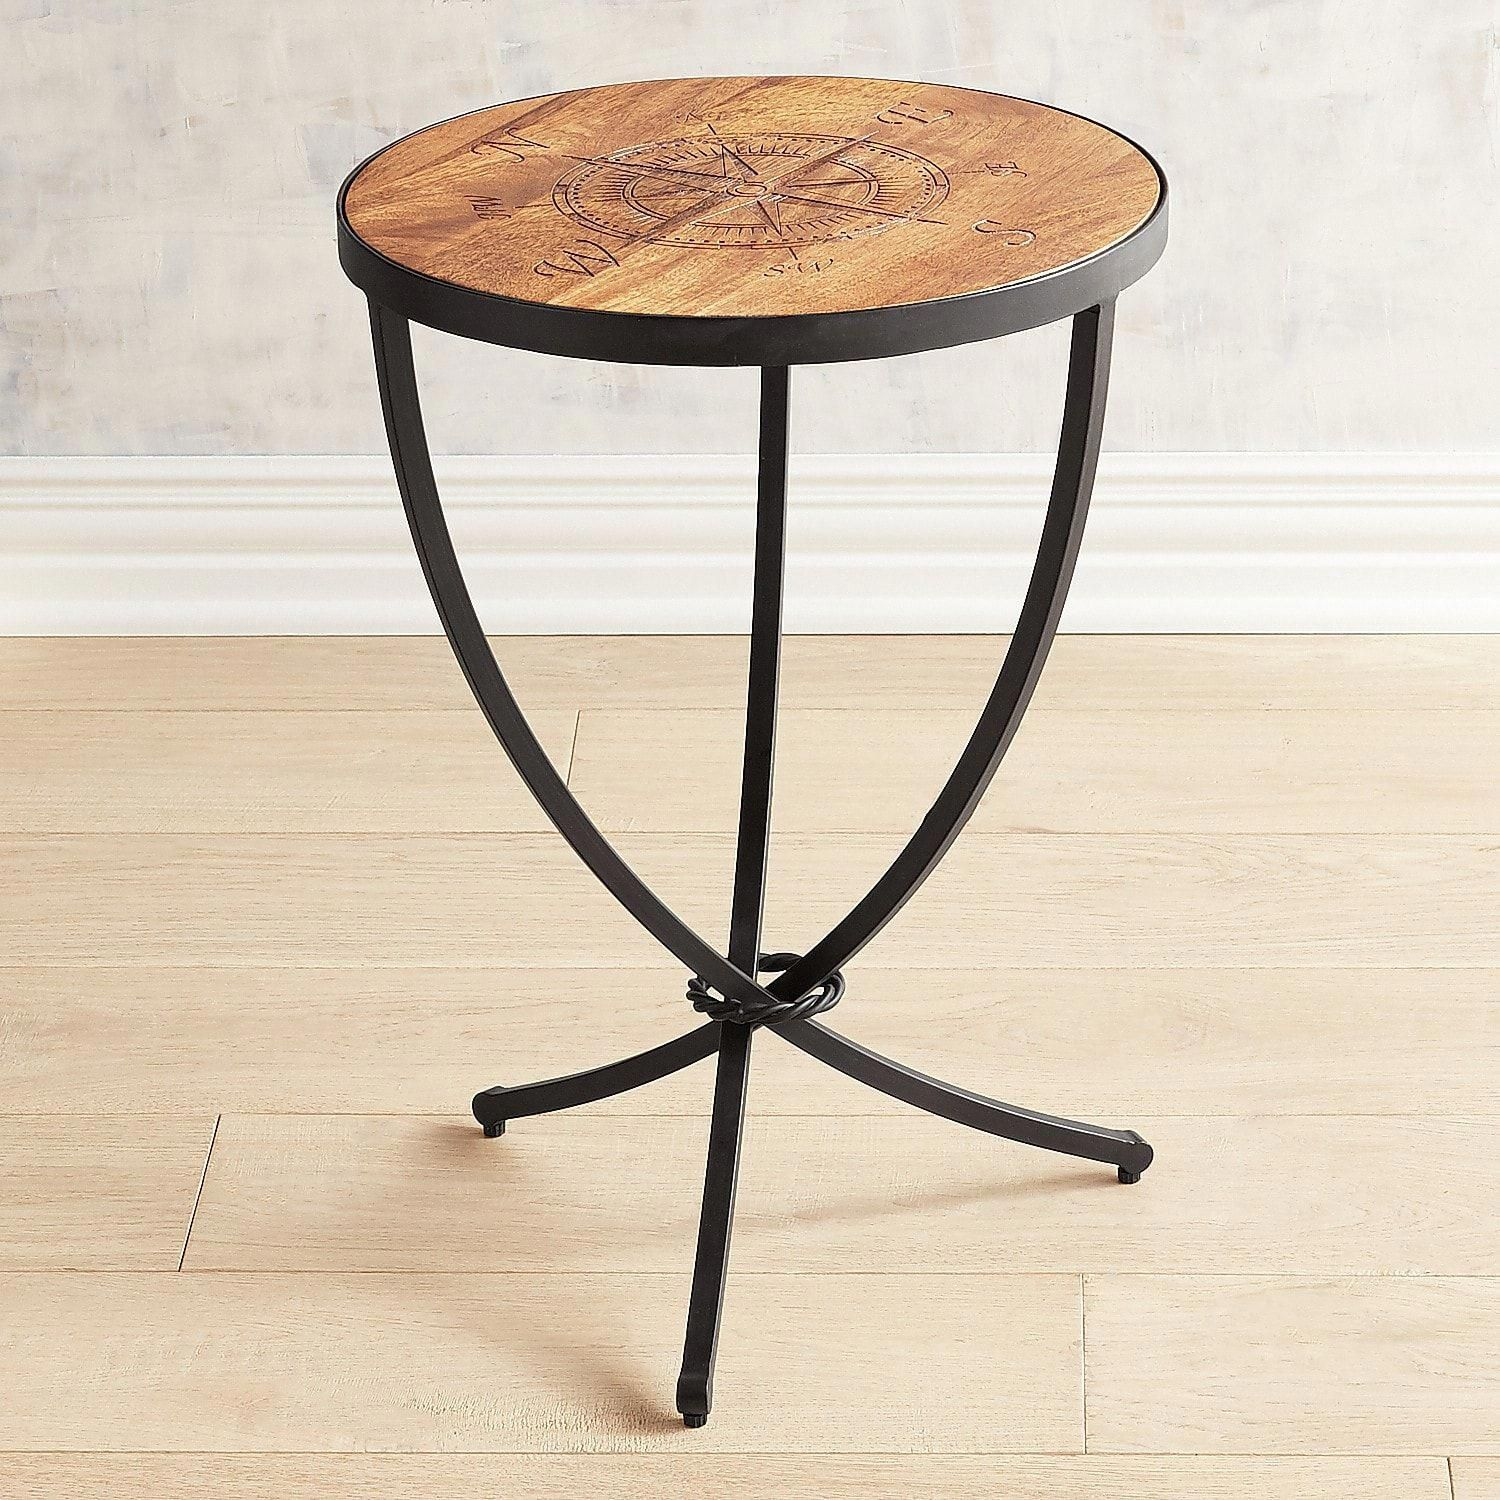 Discount Deck Furniture Compass Accent Table In 2018 Deck Furniture Pinterest Table